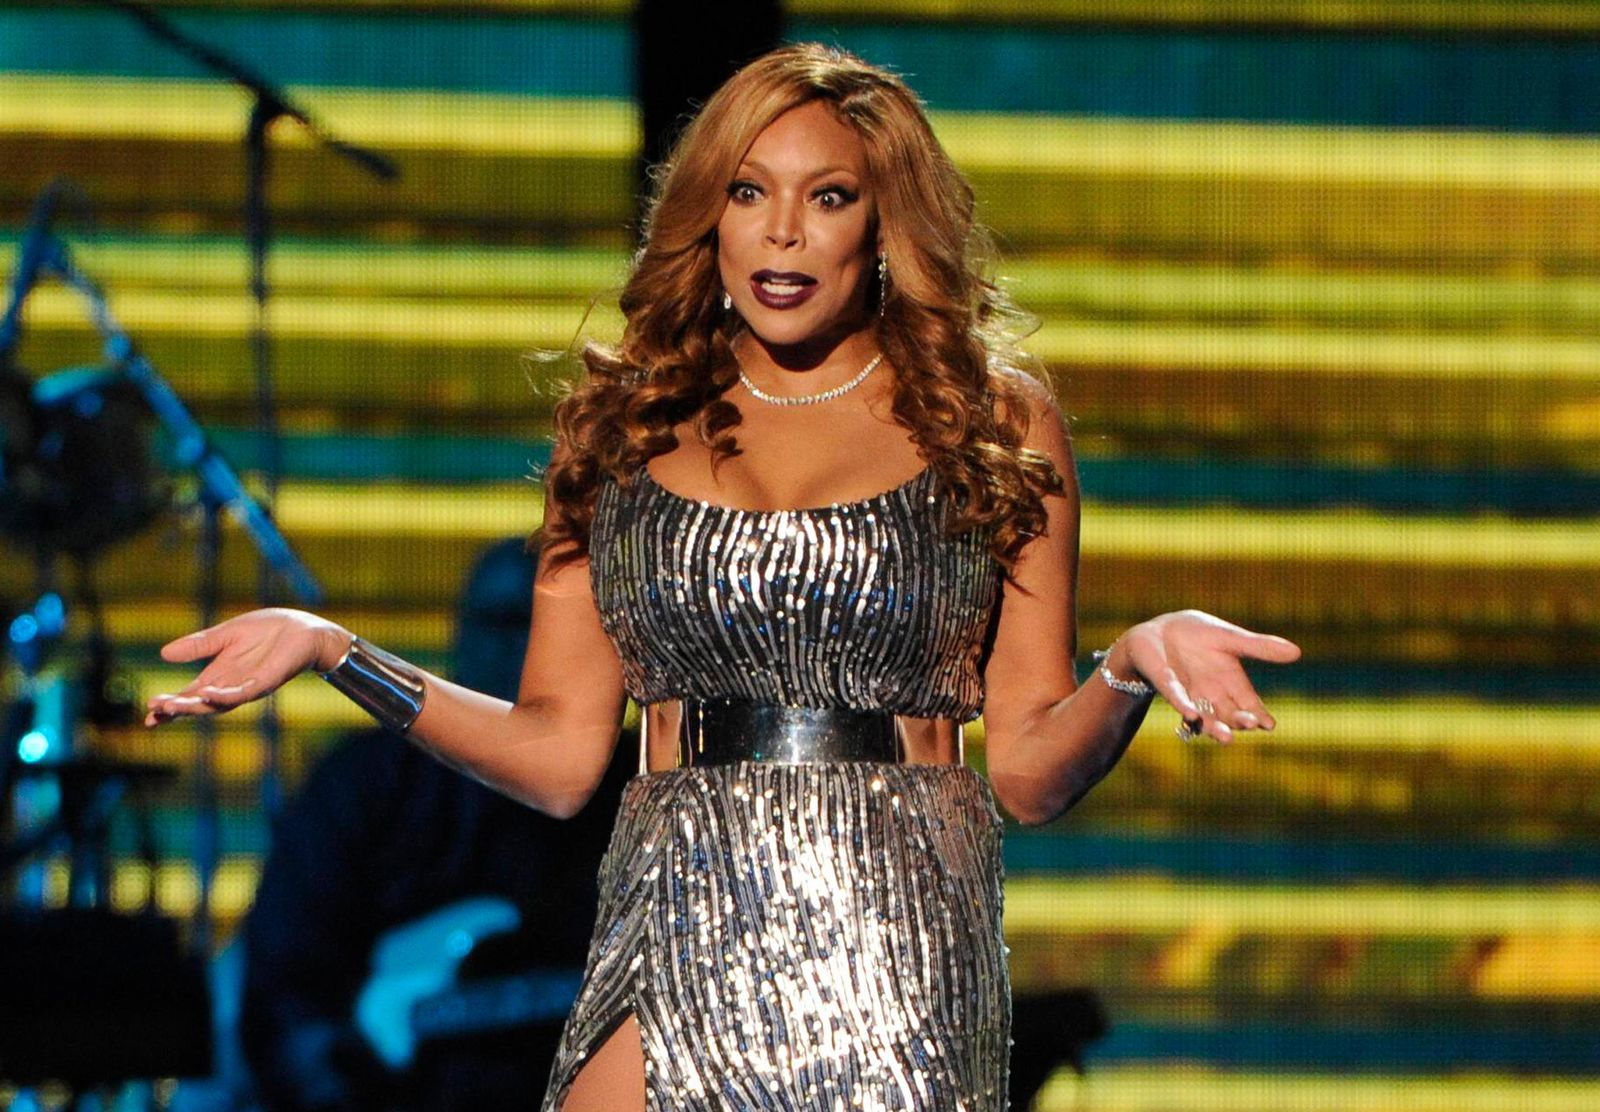 FILE - In this Nov. 7, 2014 file photo, host Wendy Williams appears at the 2014 Soul Train Awards in Las Vegas. Williams' family says she is taking an extended break from her TV talk show to deal with health issues.{ } (Photo by Chris Pizzello/Invision/AP, File)